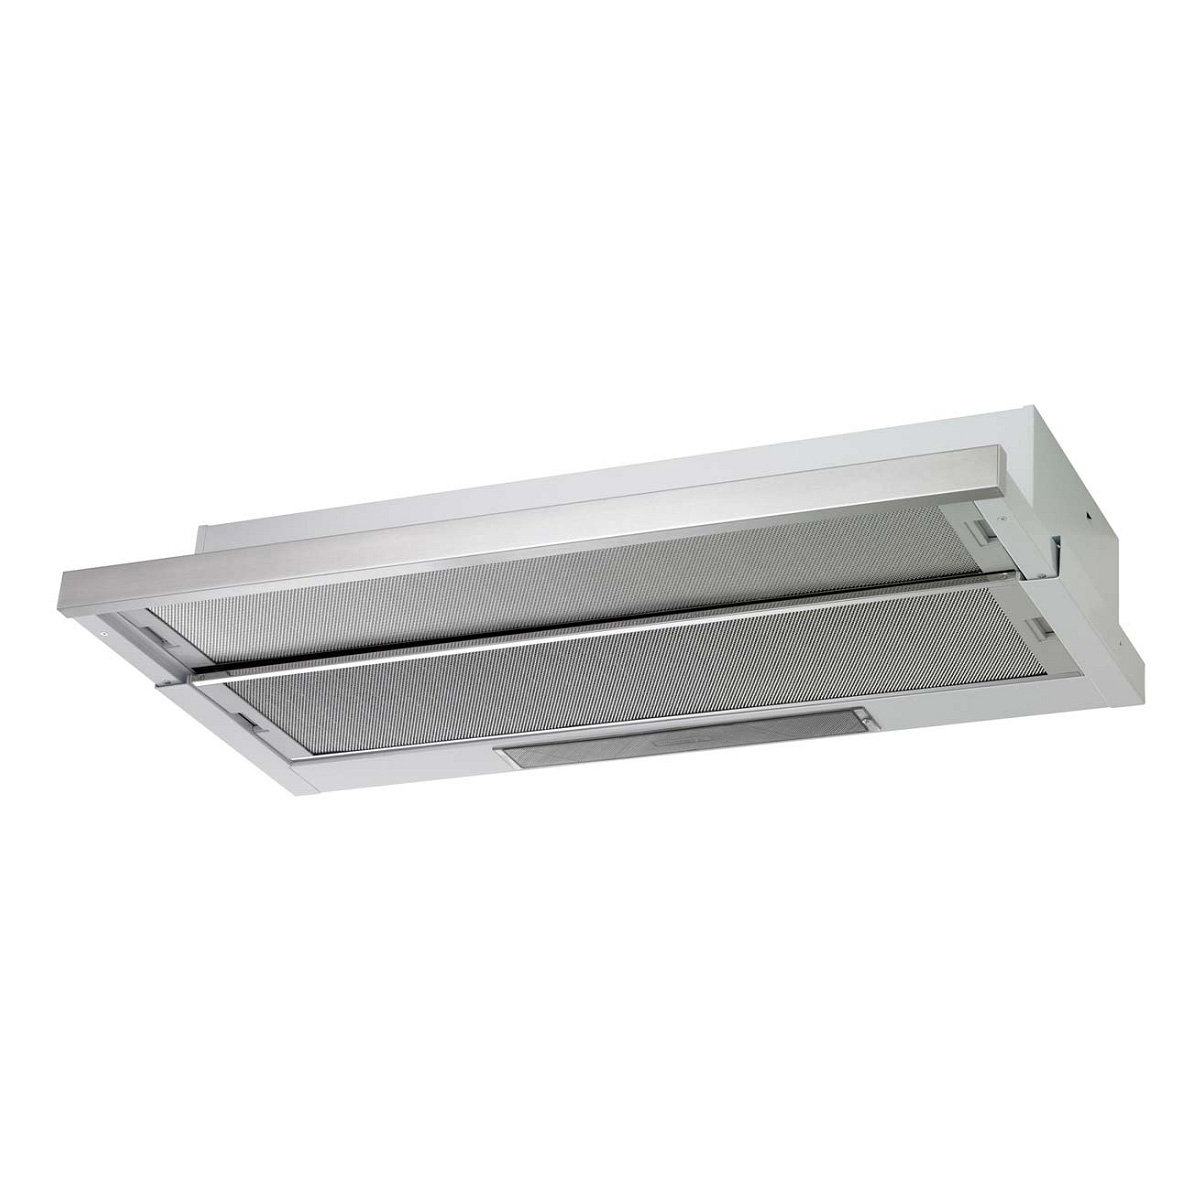 Westinghouse WRH908IS Retractable Rangehood